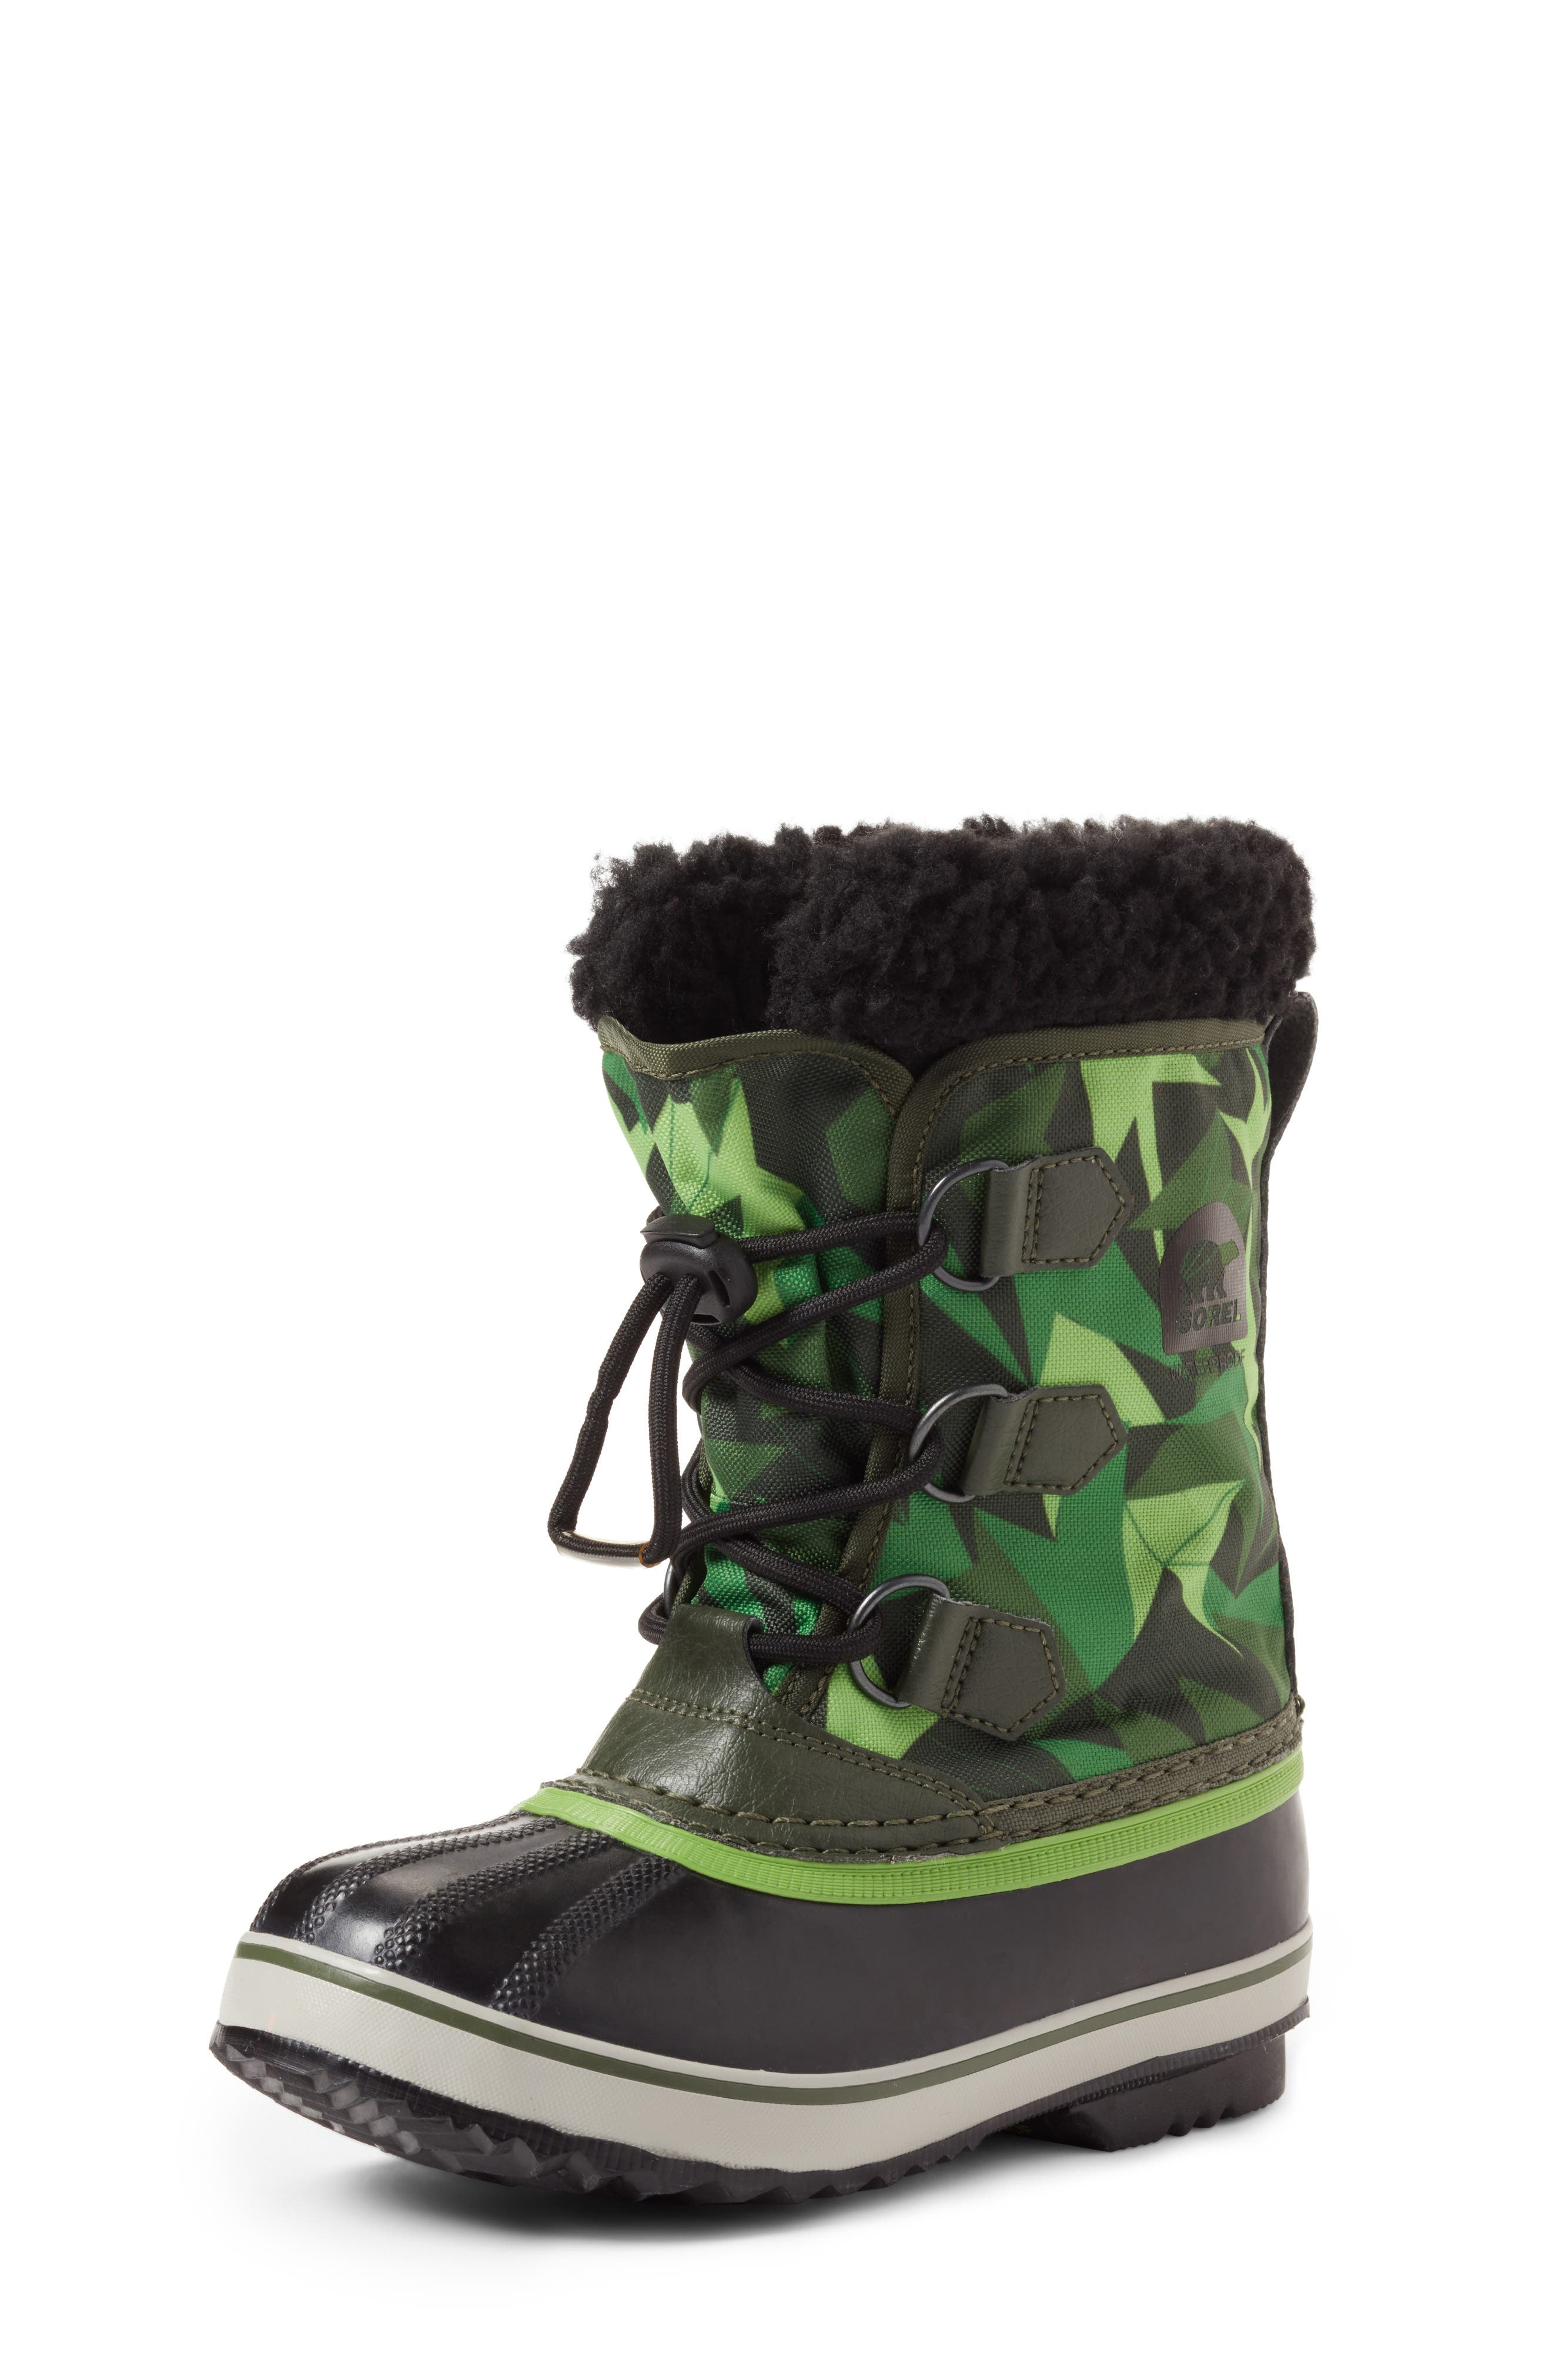 Yoot Pac Waterproof Insulated Snow Boot,                             Main thumbnail 1, color,                             347